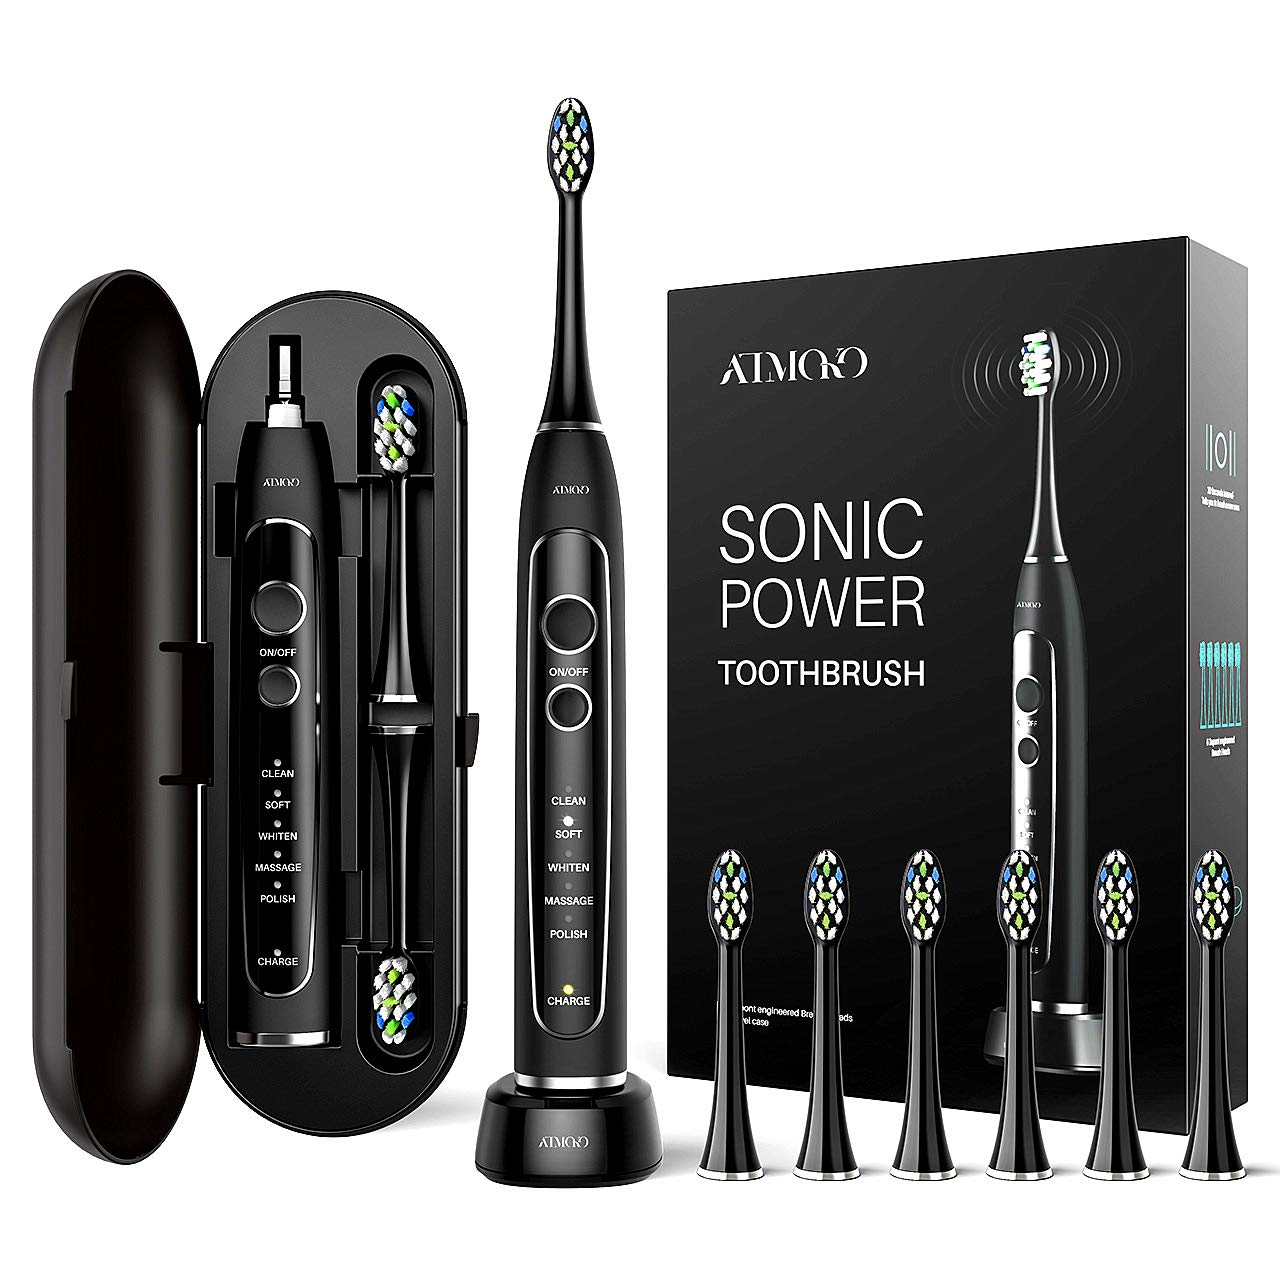 2019 Electric Toothbrush,Sonic Power Whitening Toothbrush with 40,000 VPM Motor+5 Modes Wireless Charging with Travel Case & 6 Indicator DuPont Brush Heads ATMOKO by ELLESYE (Dentists recommend) by ELLESYE